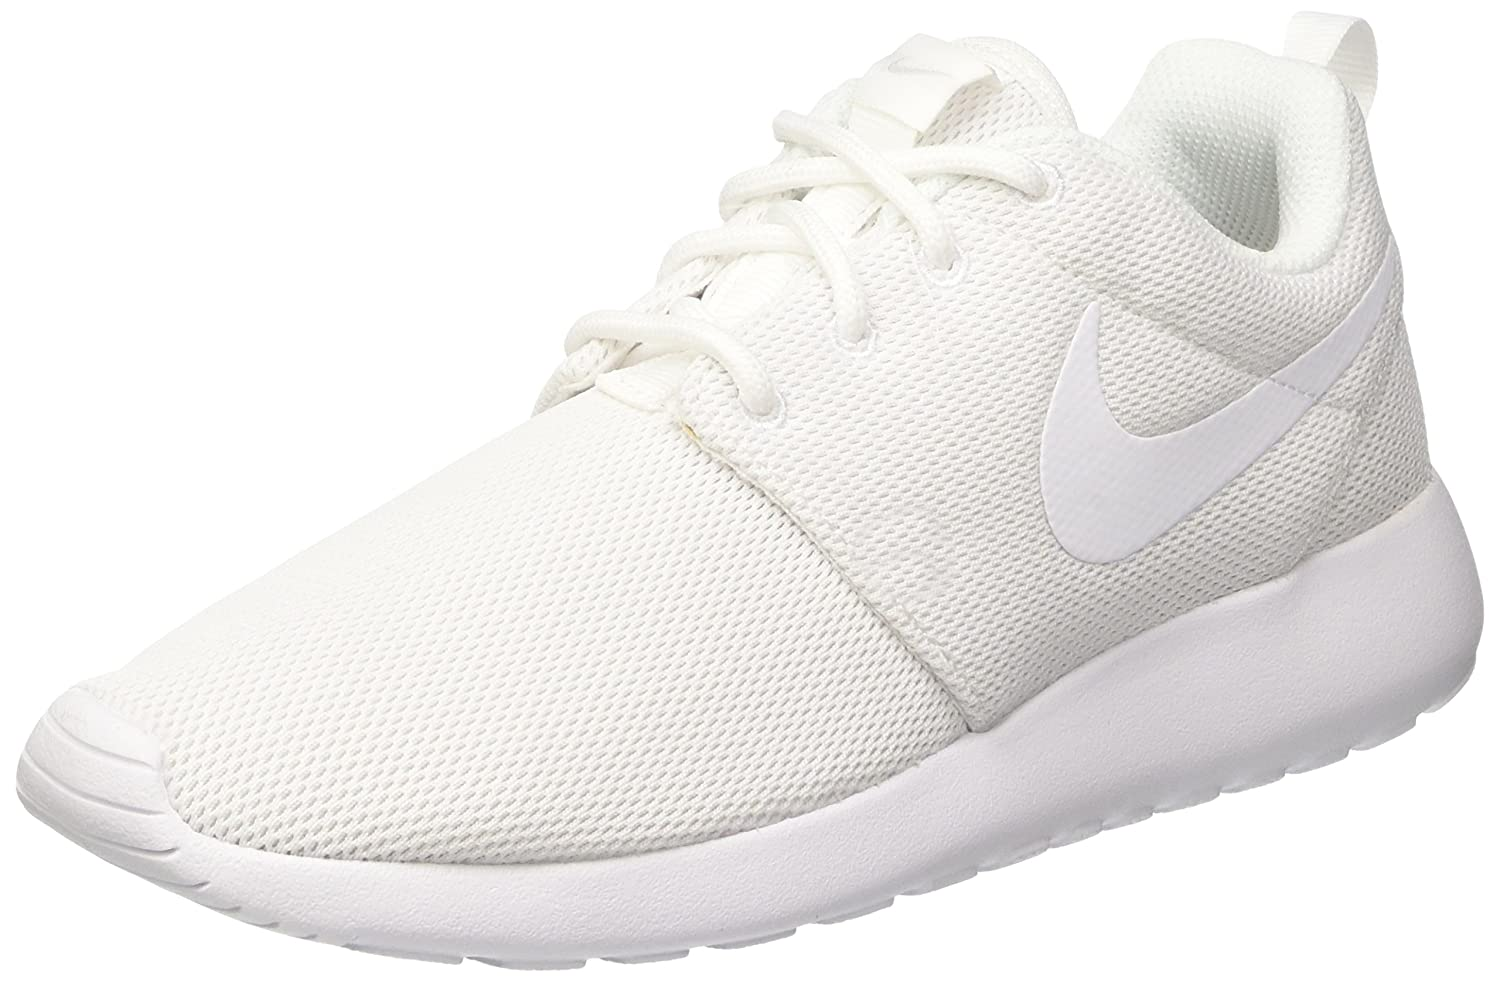 03e16ee41f4a Top15  NIKE Roshe One Women s Shoes White White Pure Platinum 844994-100  (10.5 B(M) US)